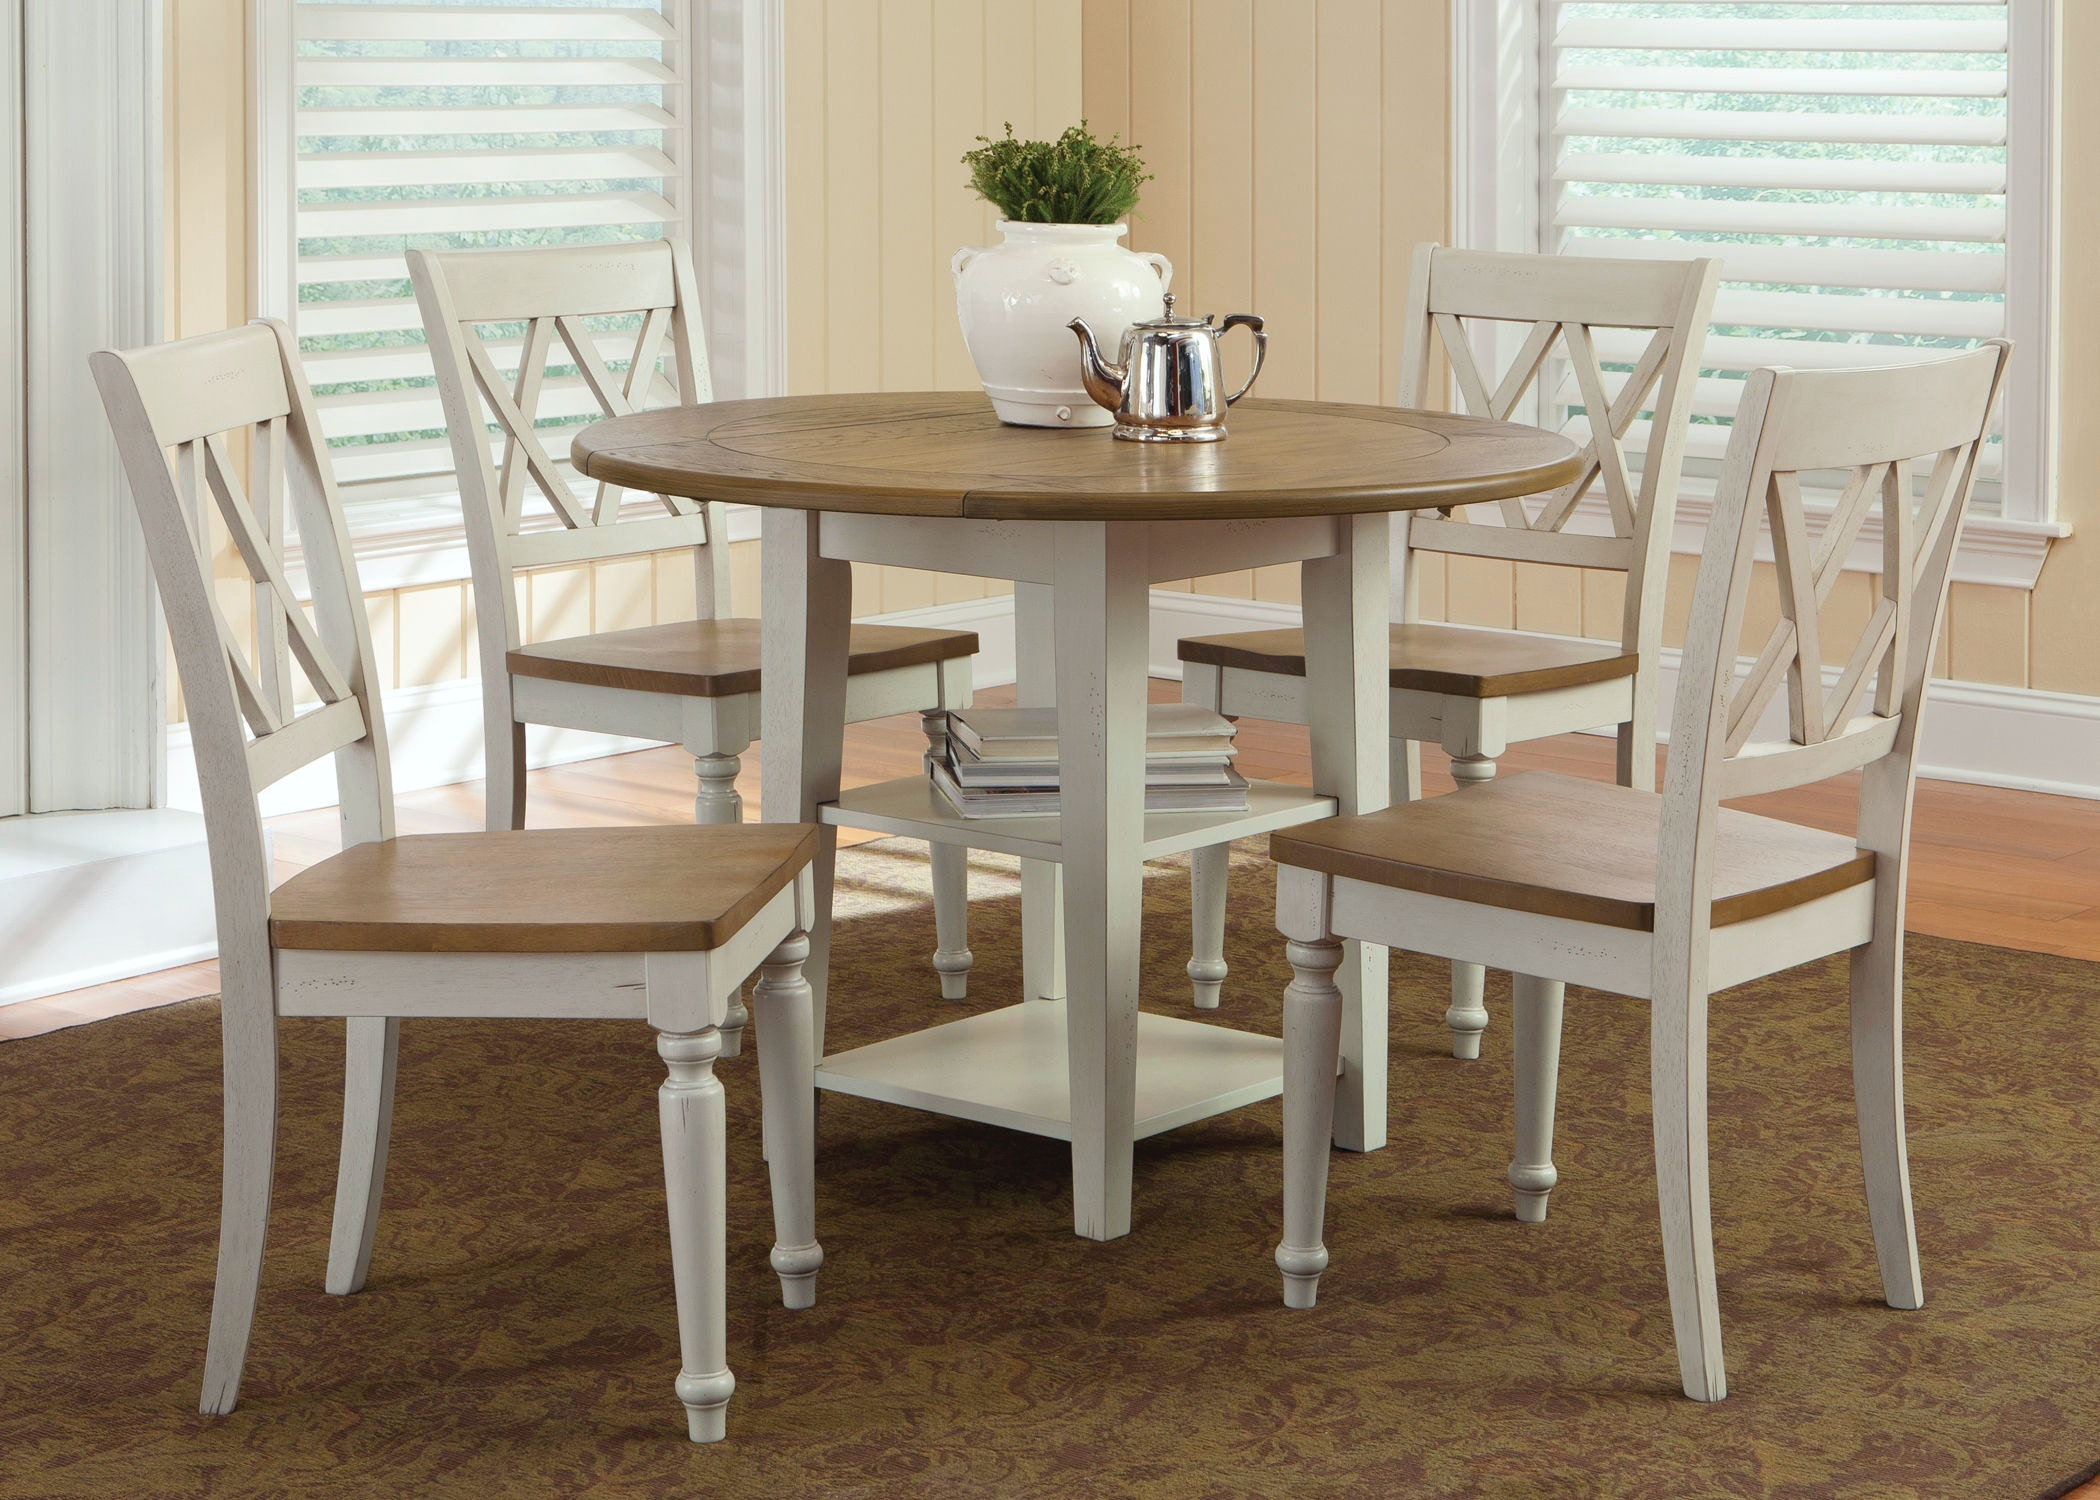 Al Fresco III Dining Drop Leaf Leg Table 841-T4242 & Liberty Furniture Dining Room Opt 3 Piece Drop Leaf Table Set 841-CD ...